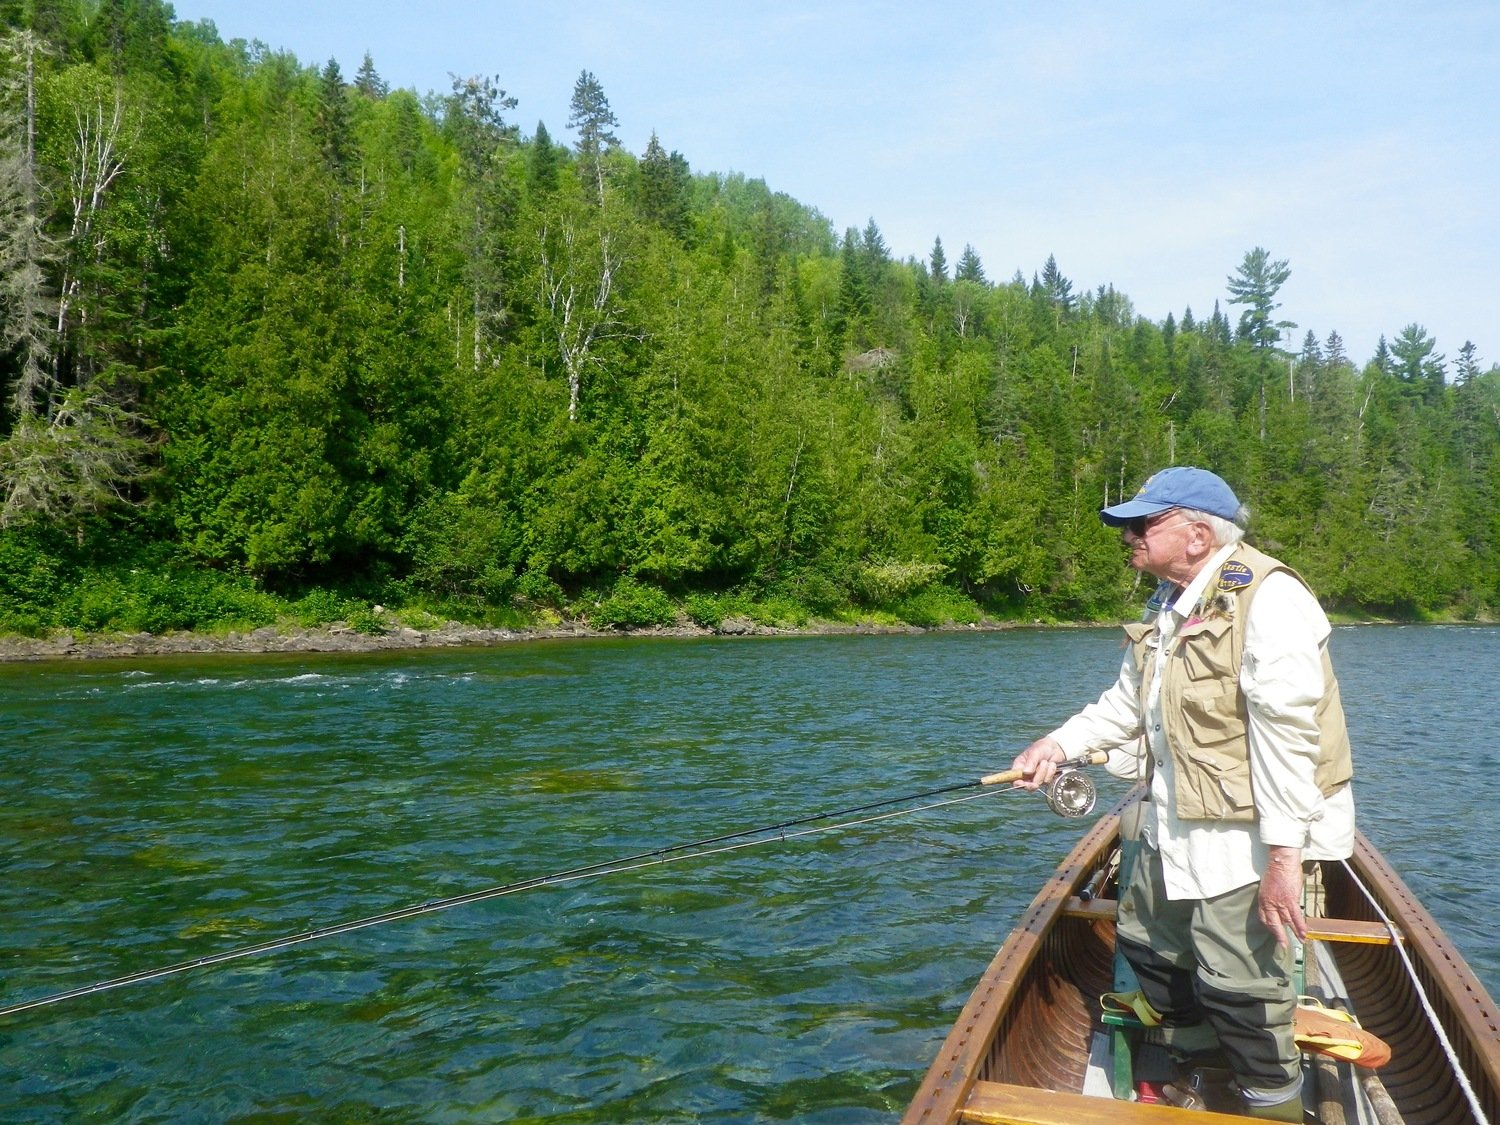 Camp bonaventure fishing report aug 17th to 23rd for Salmon fishing canada